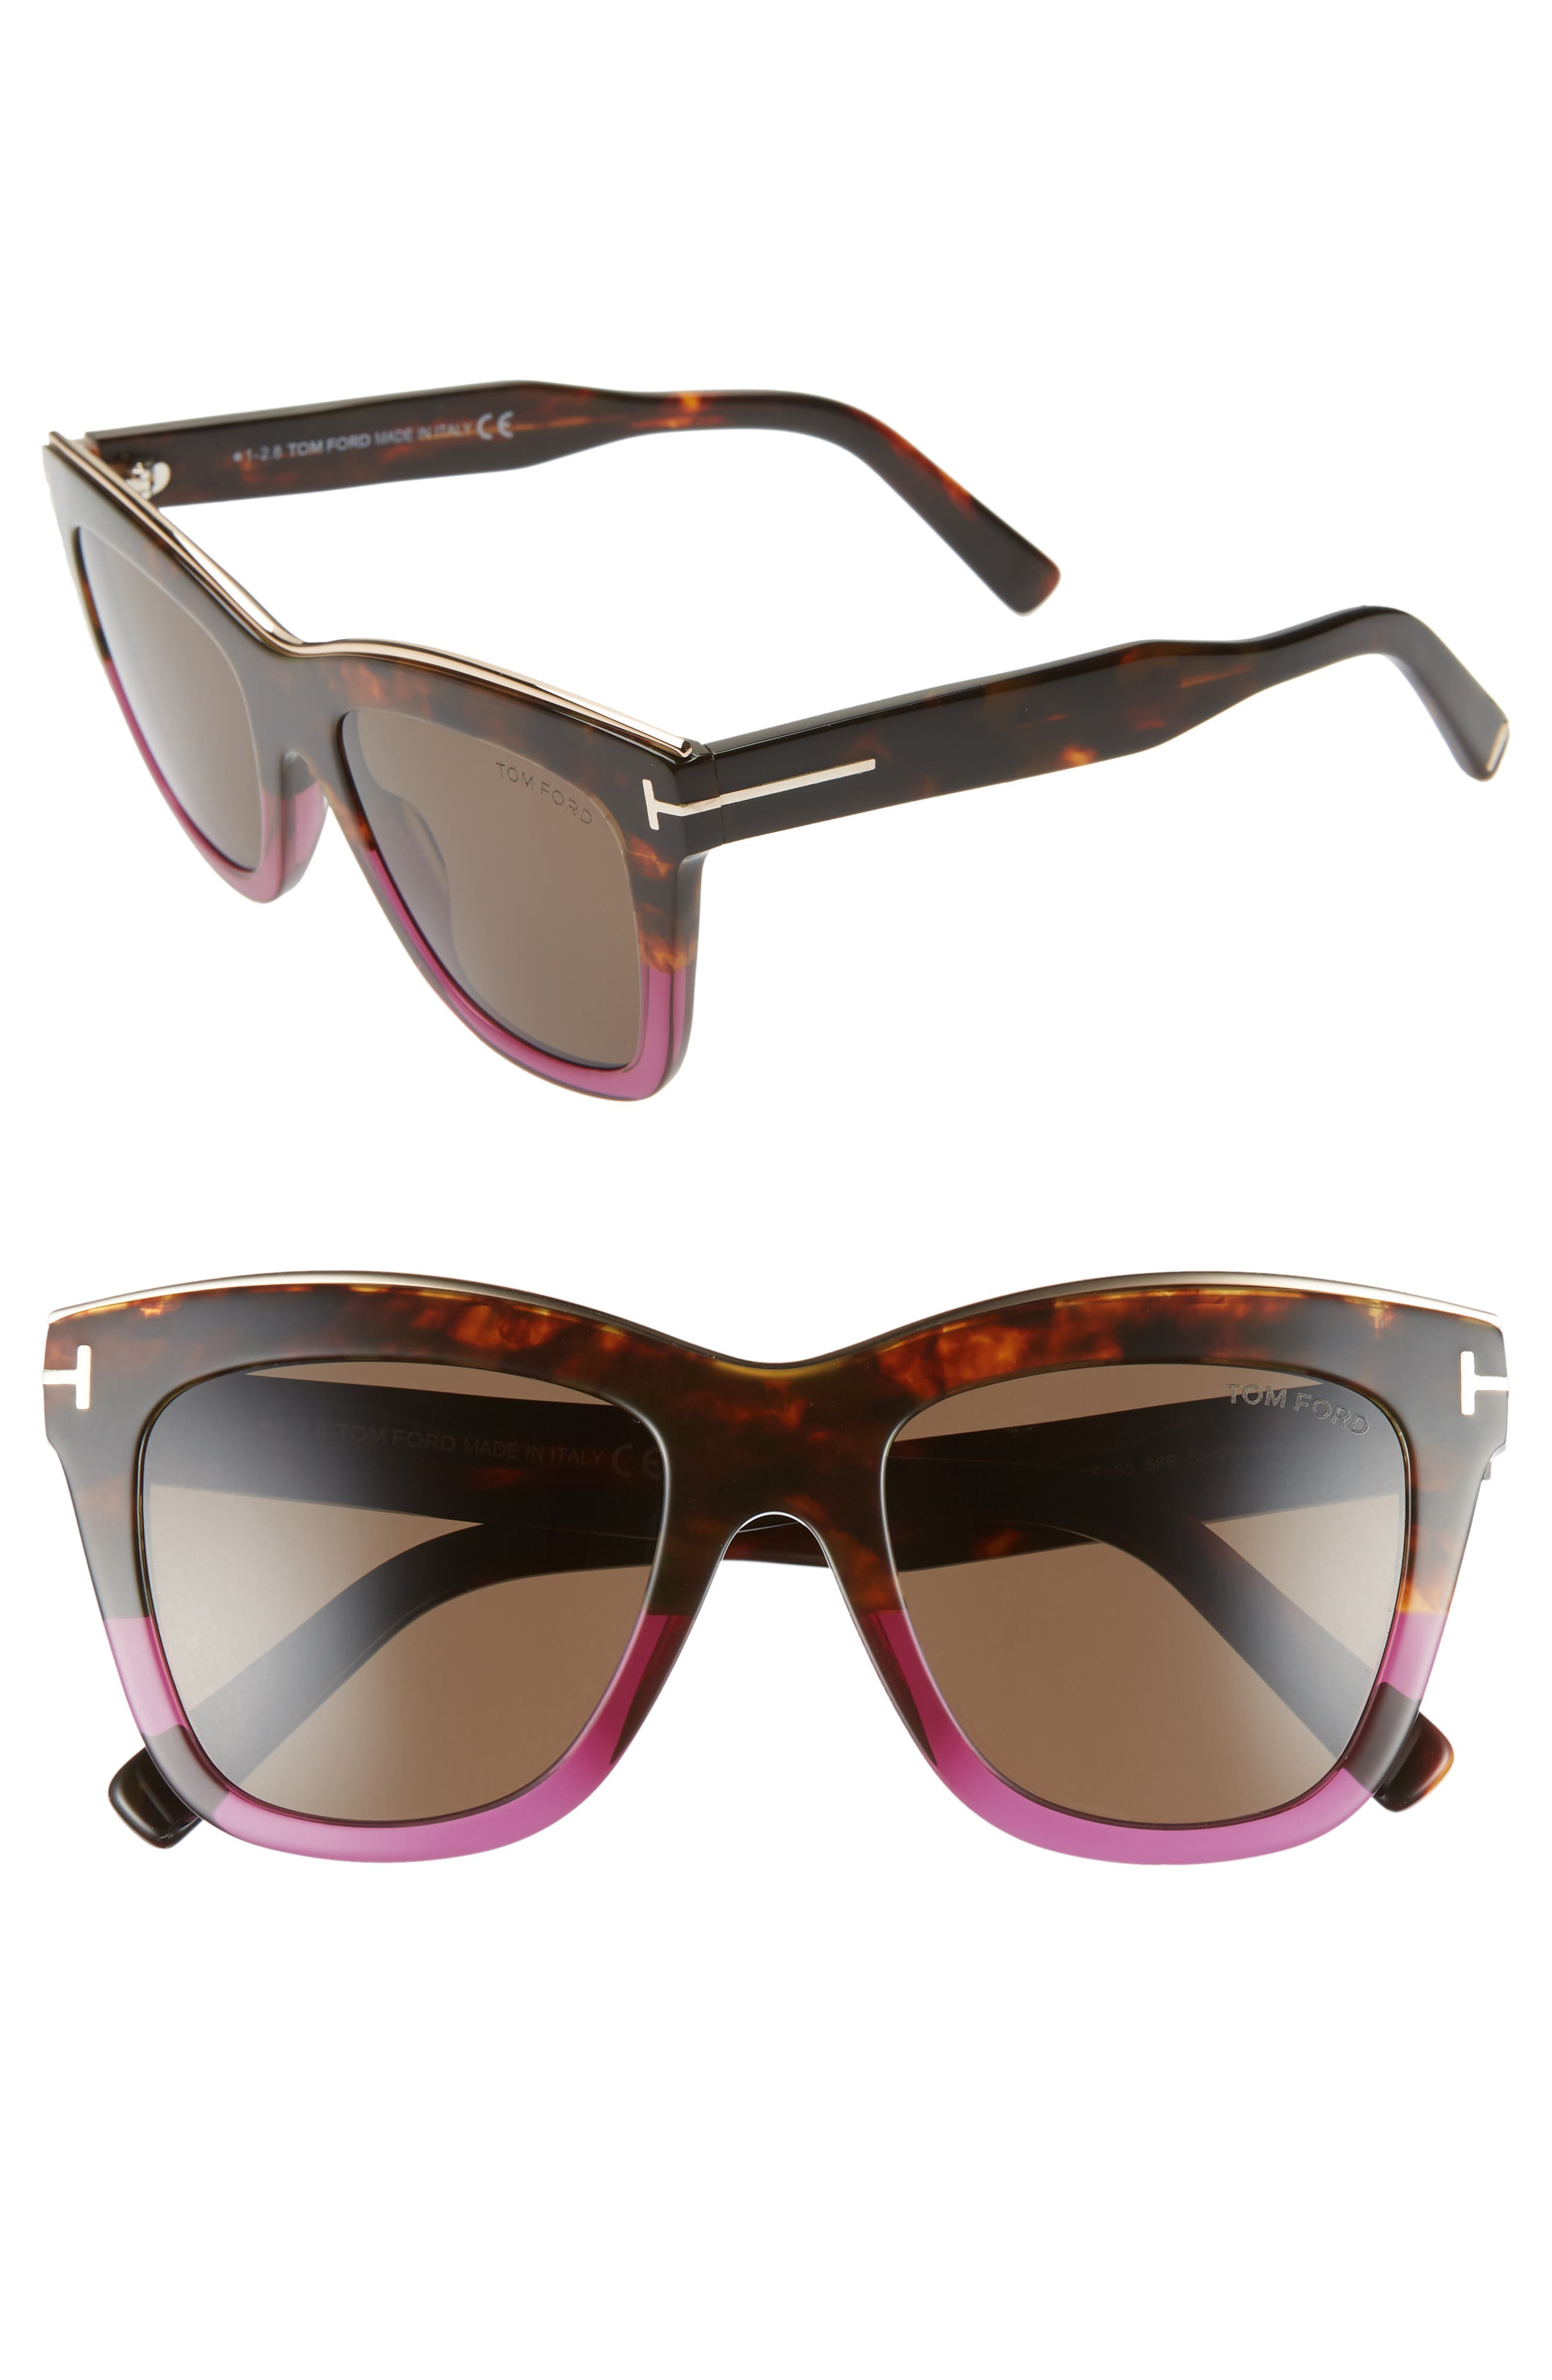 Tom Ford Julie 52Mm Sunglasses - Vintage Havana/ Purple/ Brown